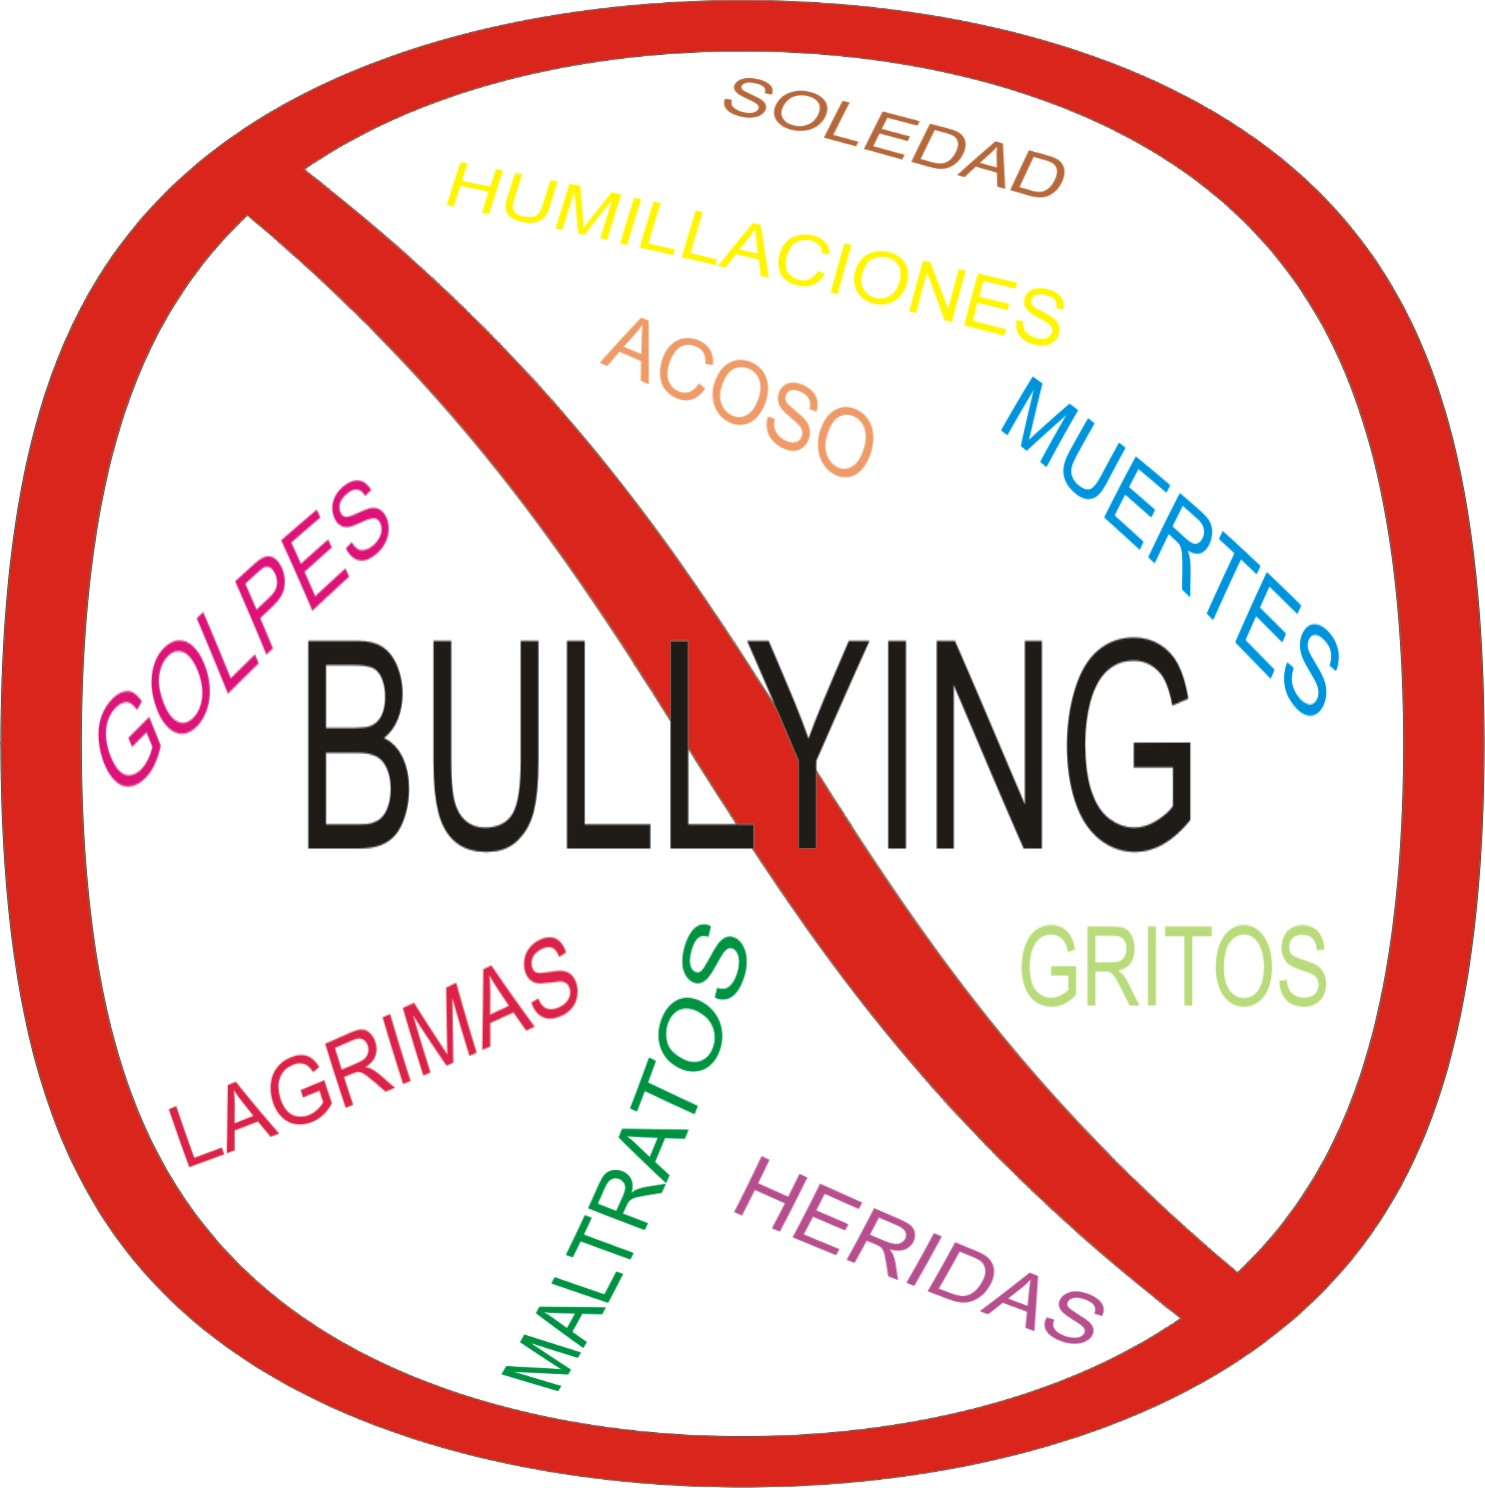 acosobullying1 acosono bullying acosostopb500 acosostopbullyingsign acosothe_image_is_a_stop_sign_with_the_words_stop_bullying_2014 02 18_21 03